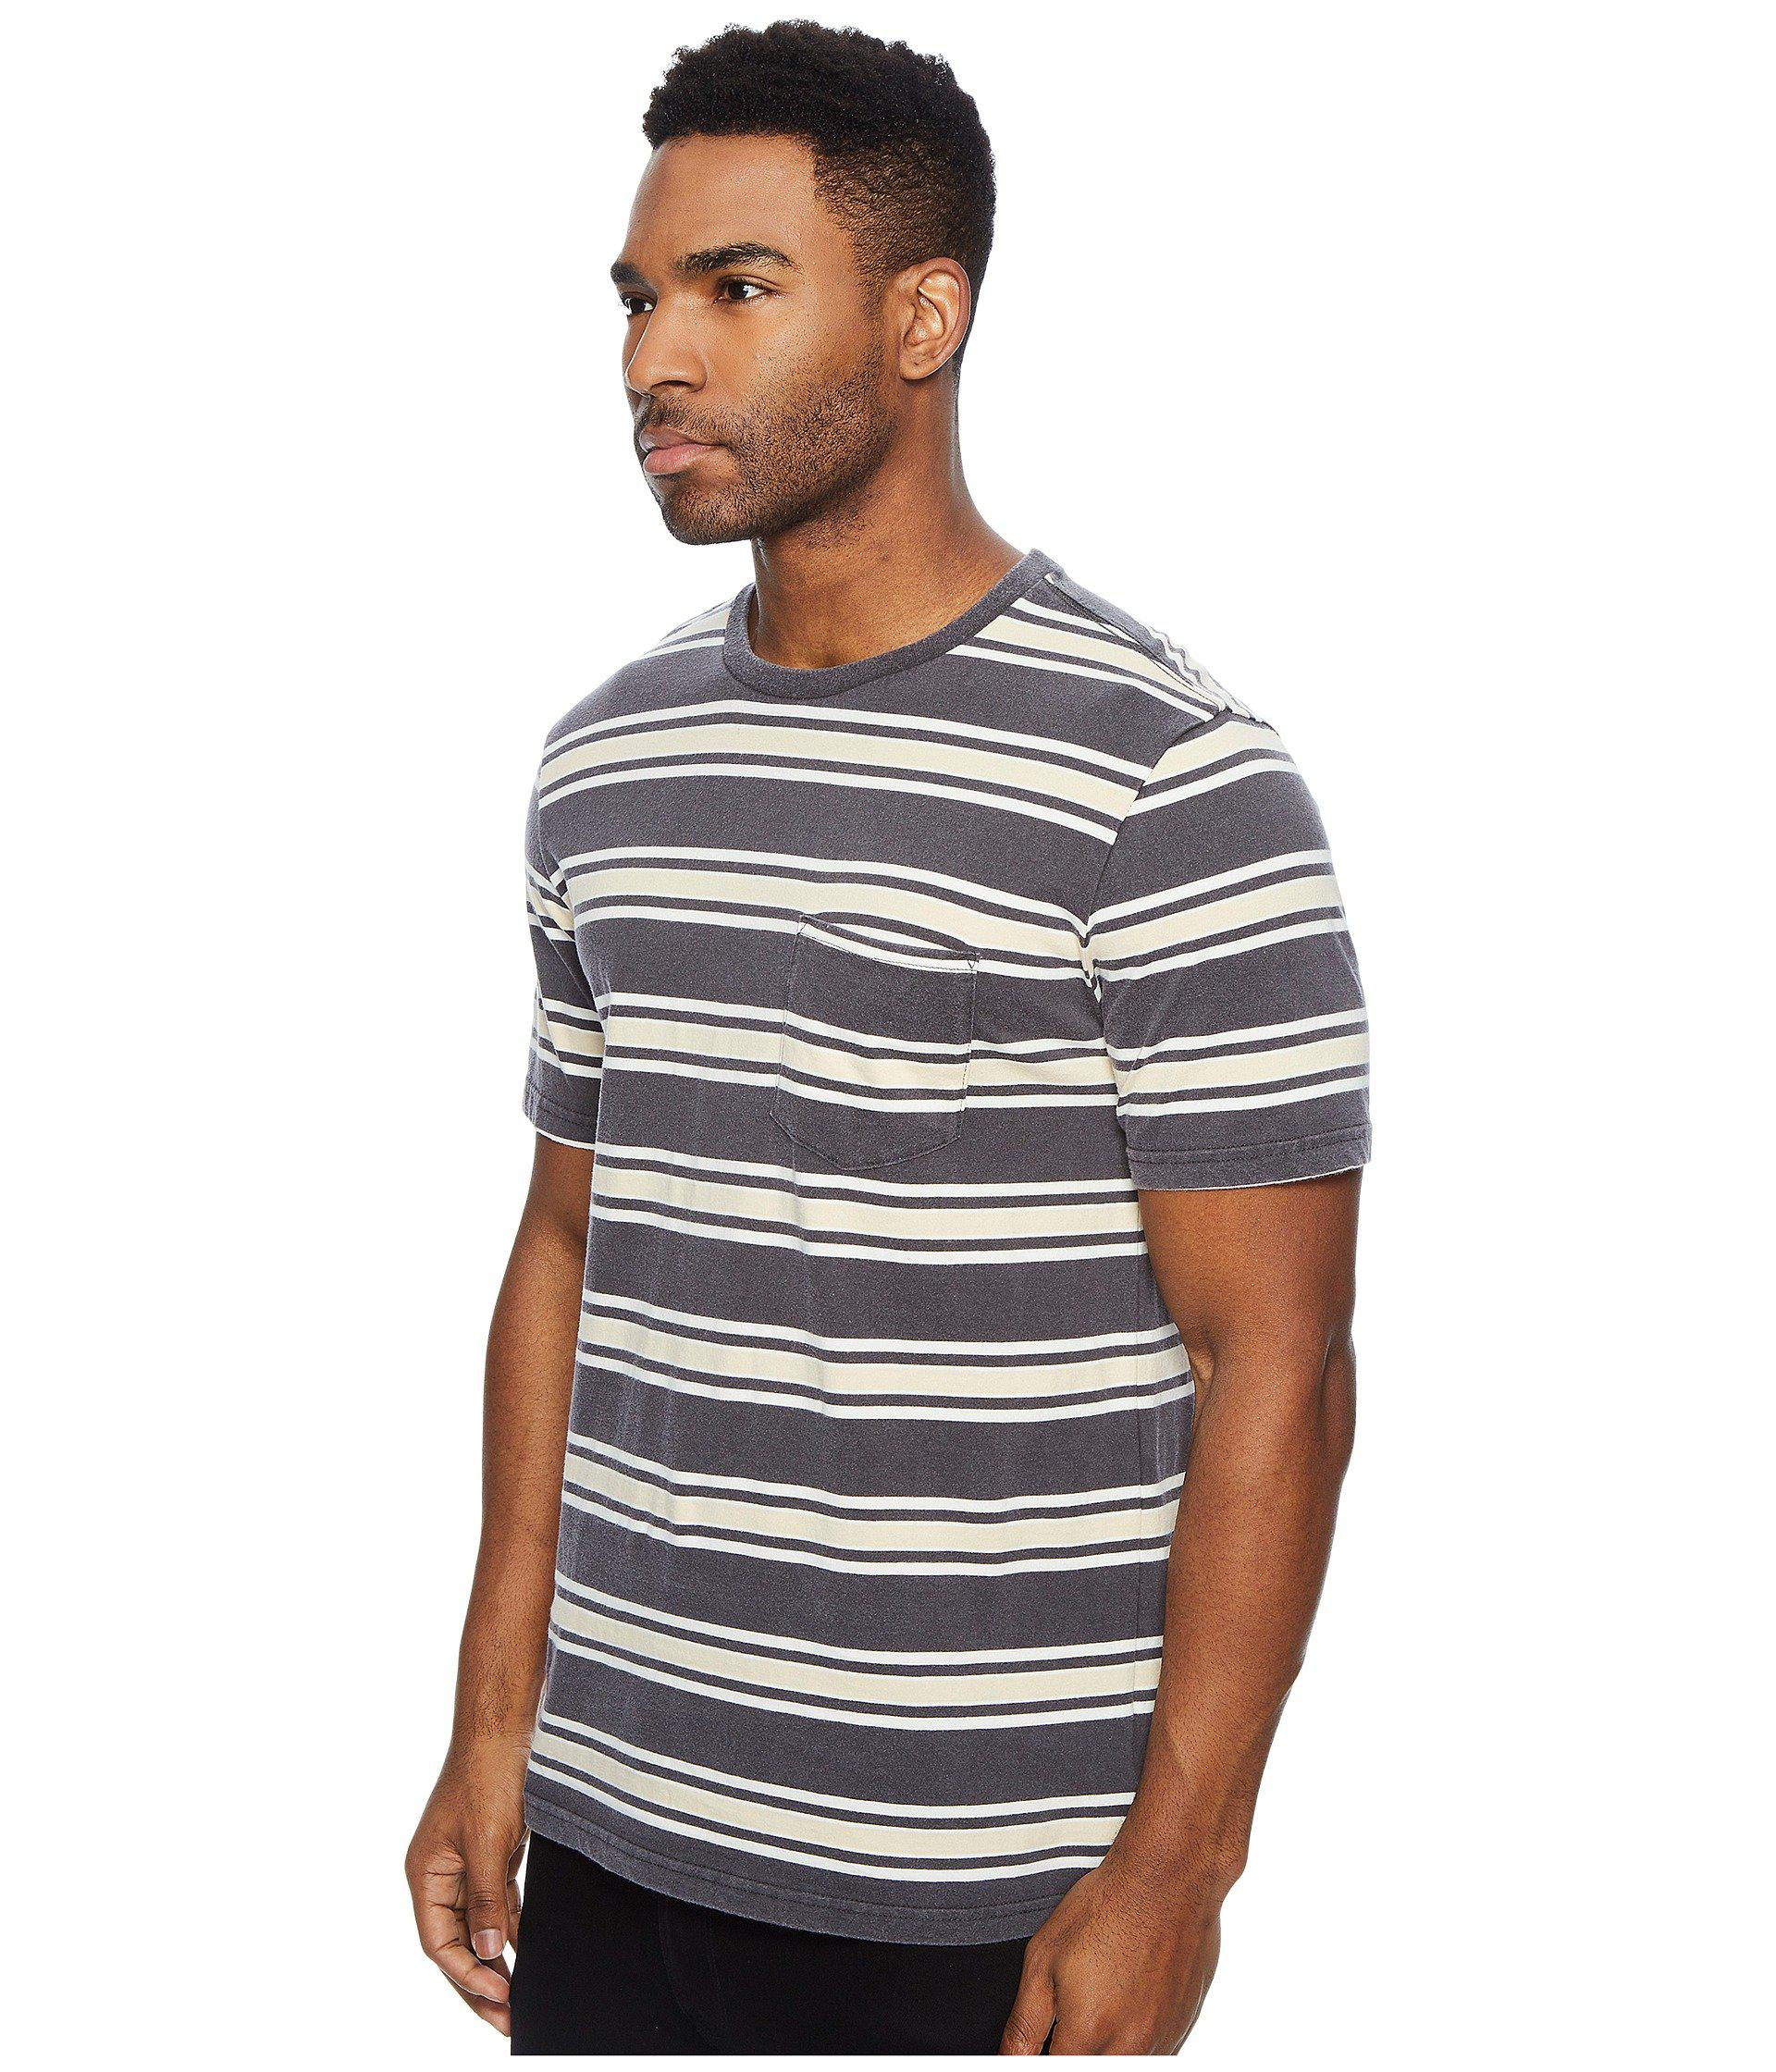 Brixton Mens Hilt Tailored Fit Washed Short Sleeve Pocket Knit Tee